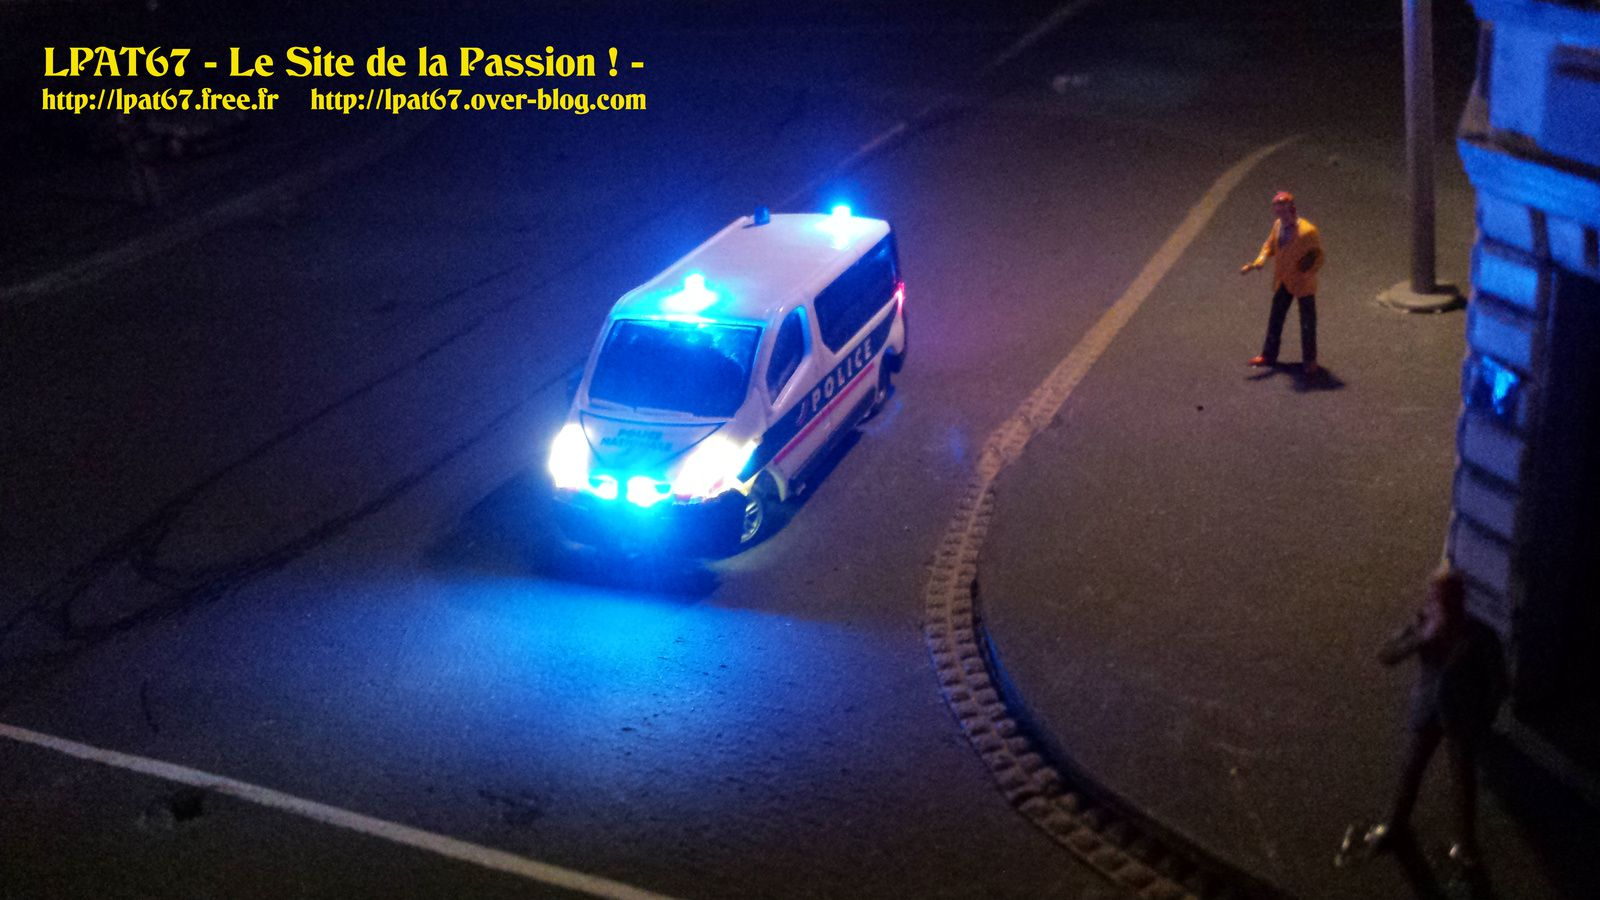 Renault Trafic Police : 18 Leds cms, 1 accu 150mA/H, DC-05SI